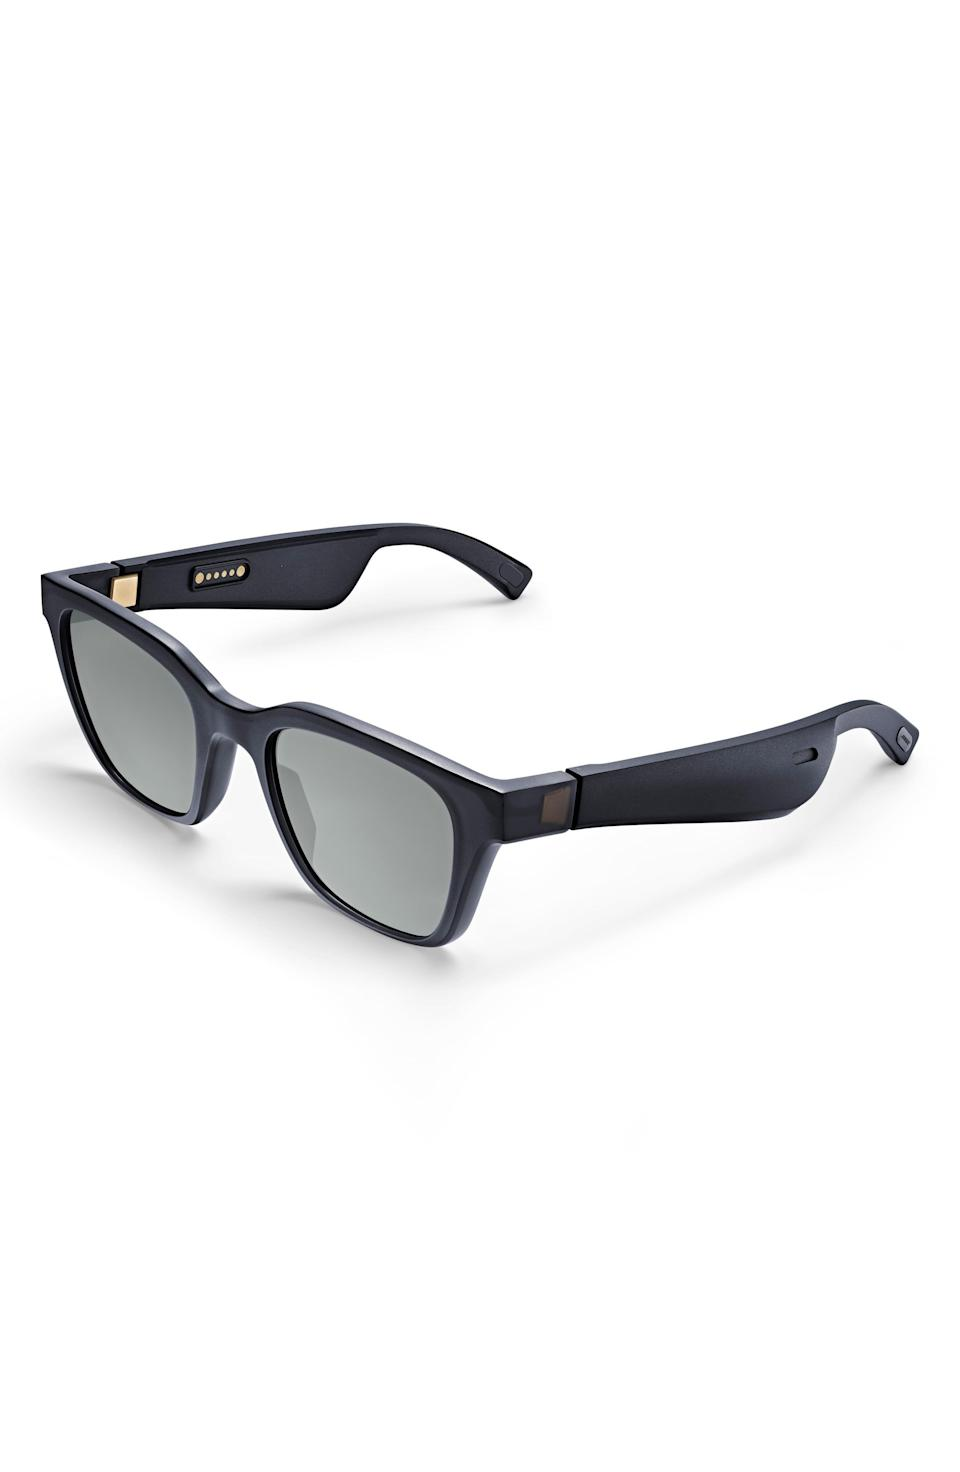 """<h3>The Golf Dad</h3><p>If your dad spends most of his free time on the green, chances are he's expecting a new club or <em>another</em> colorful polo this year. Surprise him with Bose's audio sunglasses instead — the stylish frames not only play headphone-free audio and make phone calls, but also connect with the Golfshot audio app to estimate his distance from the green or give him a rundown of the next hole.</p><br><br><strong>Bose</strong> Frames Alto 52mm Audio Sunglasses, $199, available at <a href=""""https://shop.nordstrom.com/s/bose-frames-alto-52mm-audio-sunglasses/5239528?"""" rel=""""nofollow noopener"""" target=""""_blank"""" data-ylk=""""slk:Nordstrom"""" class=""""link rapid-noclick-resp"""">Nordstrom</a>"""